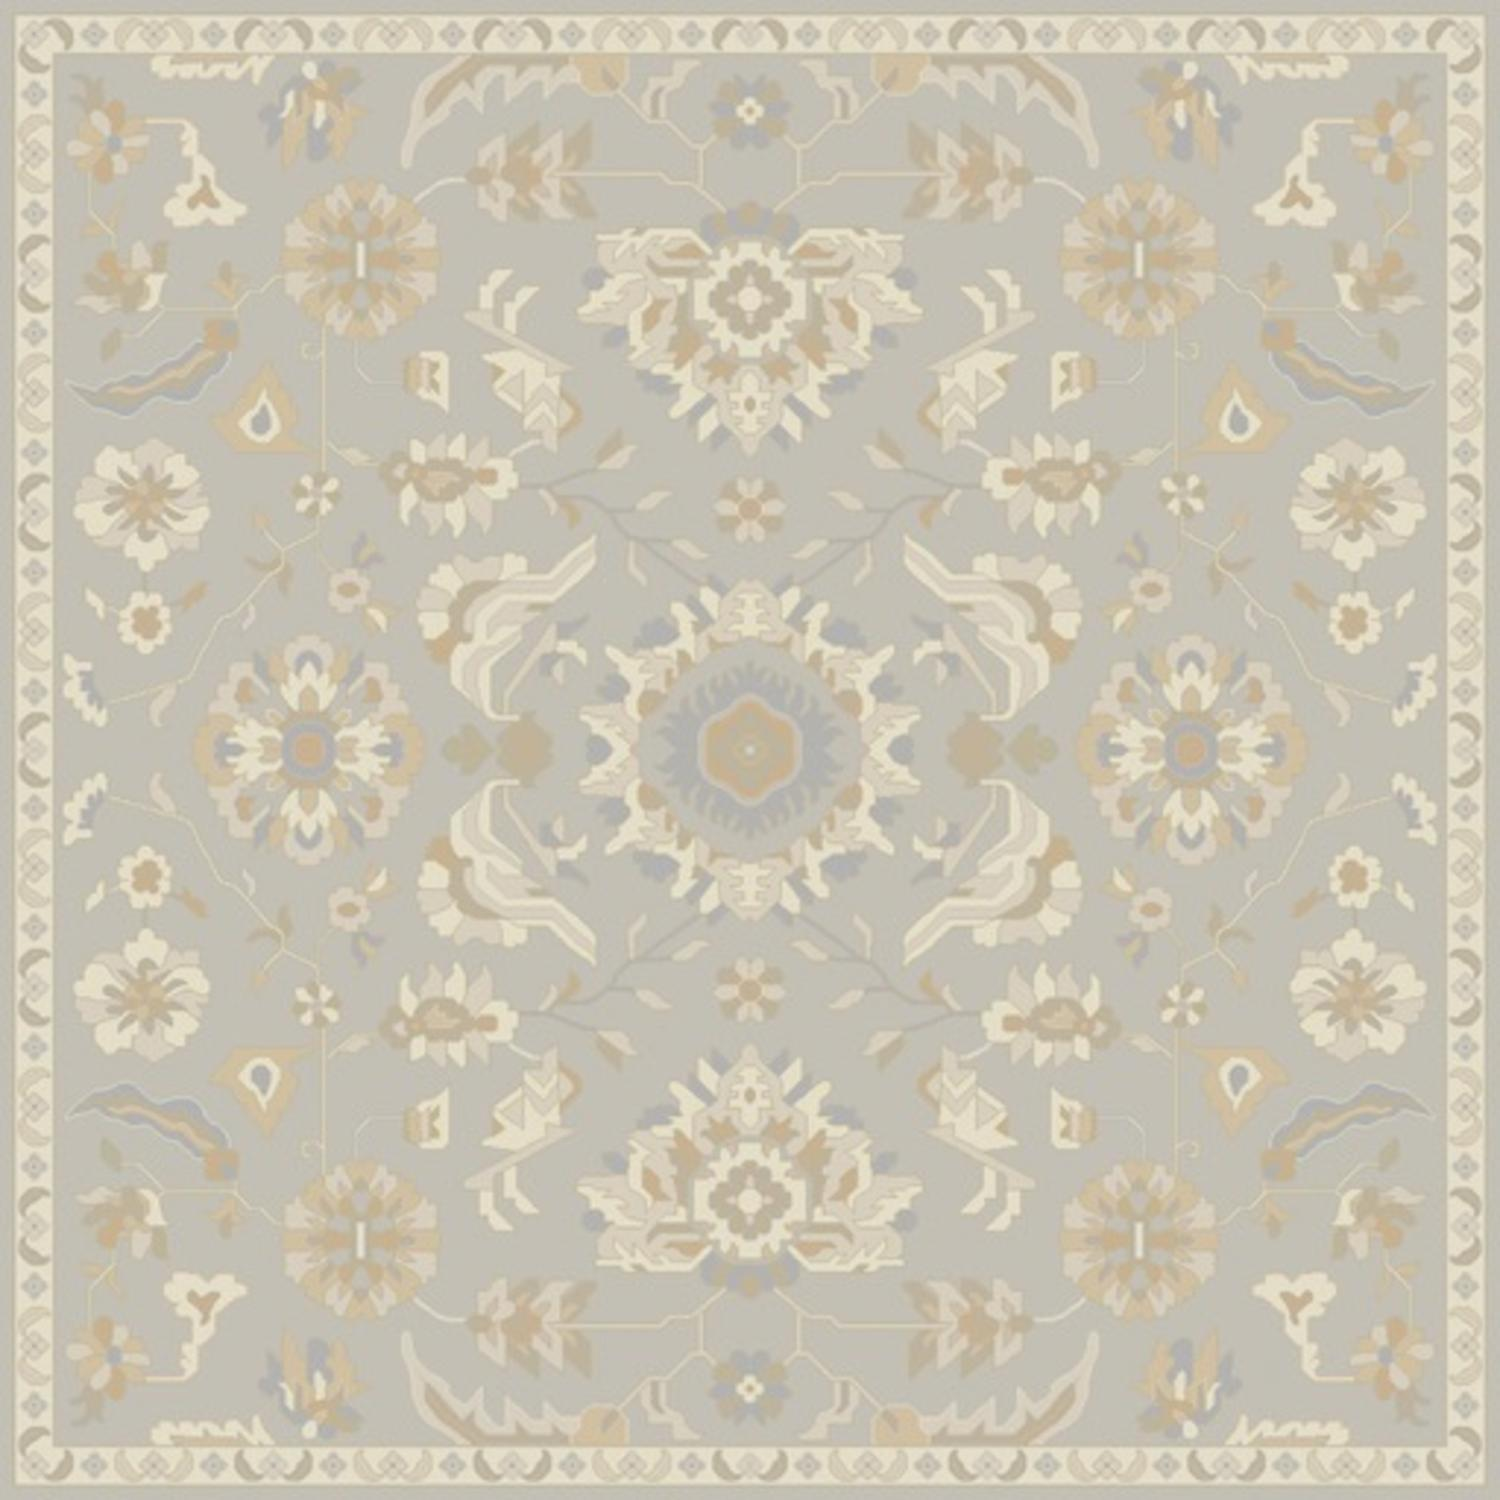 4' x 4' Elegant Leaves Slate Gray and Tan Brown Square Wool Area Throw Rug